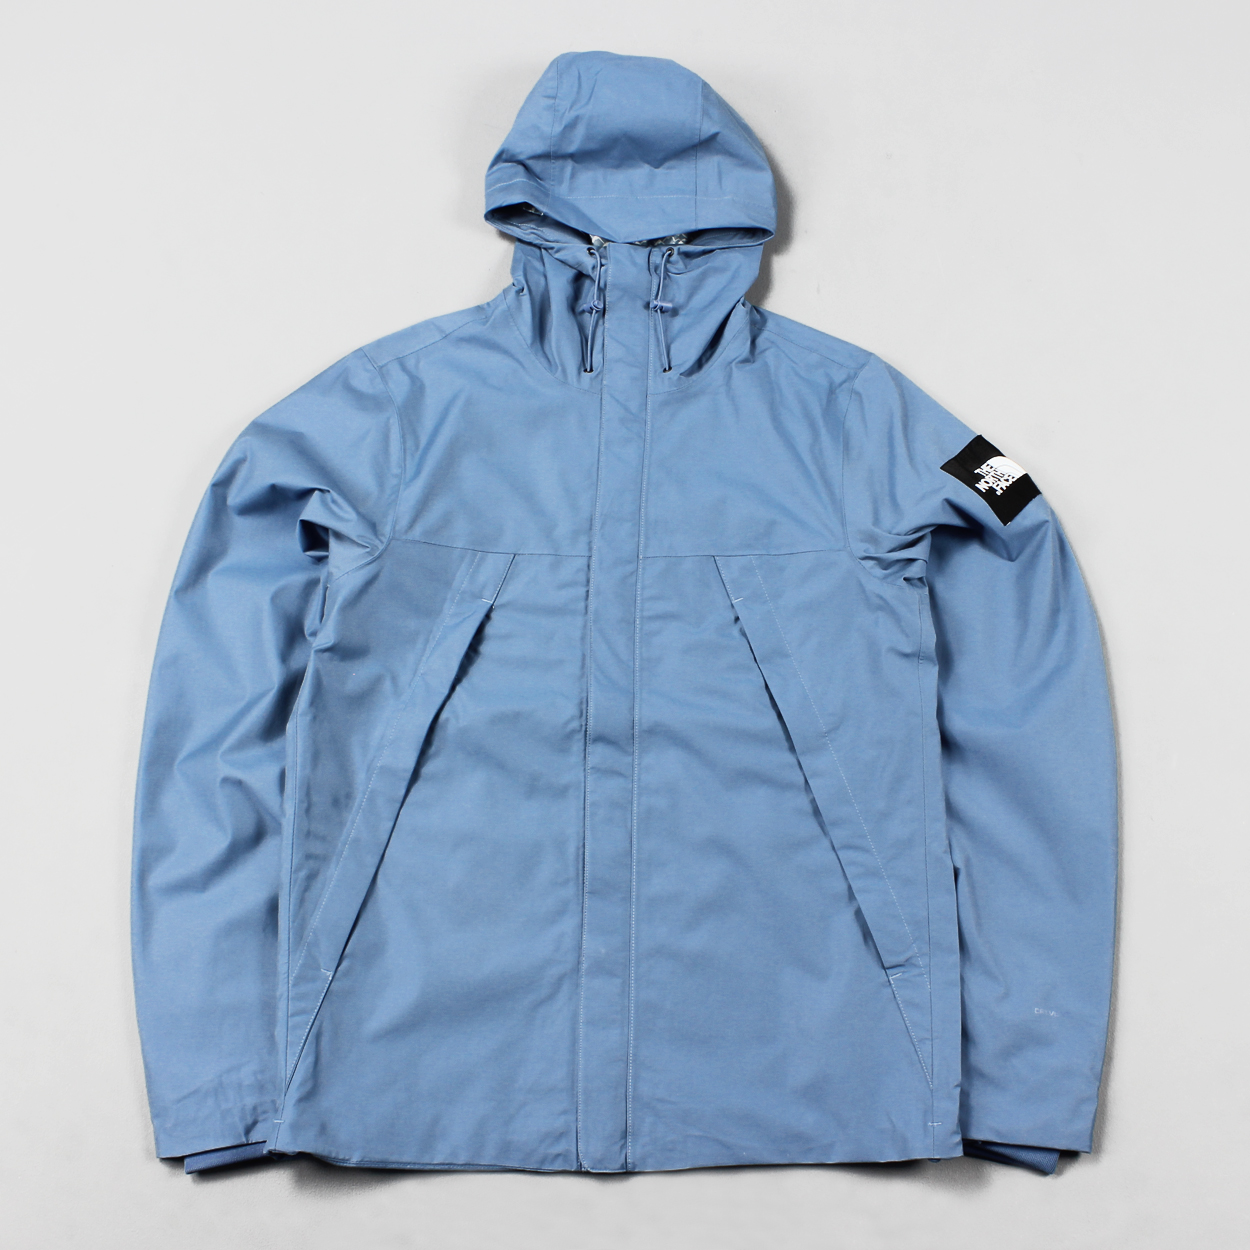 How Much Are North Face Jackets